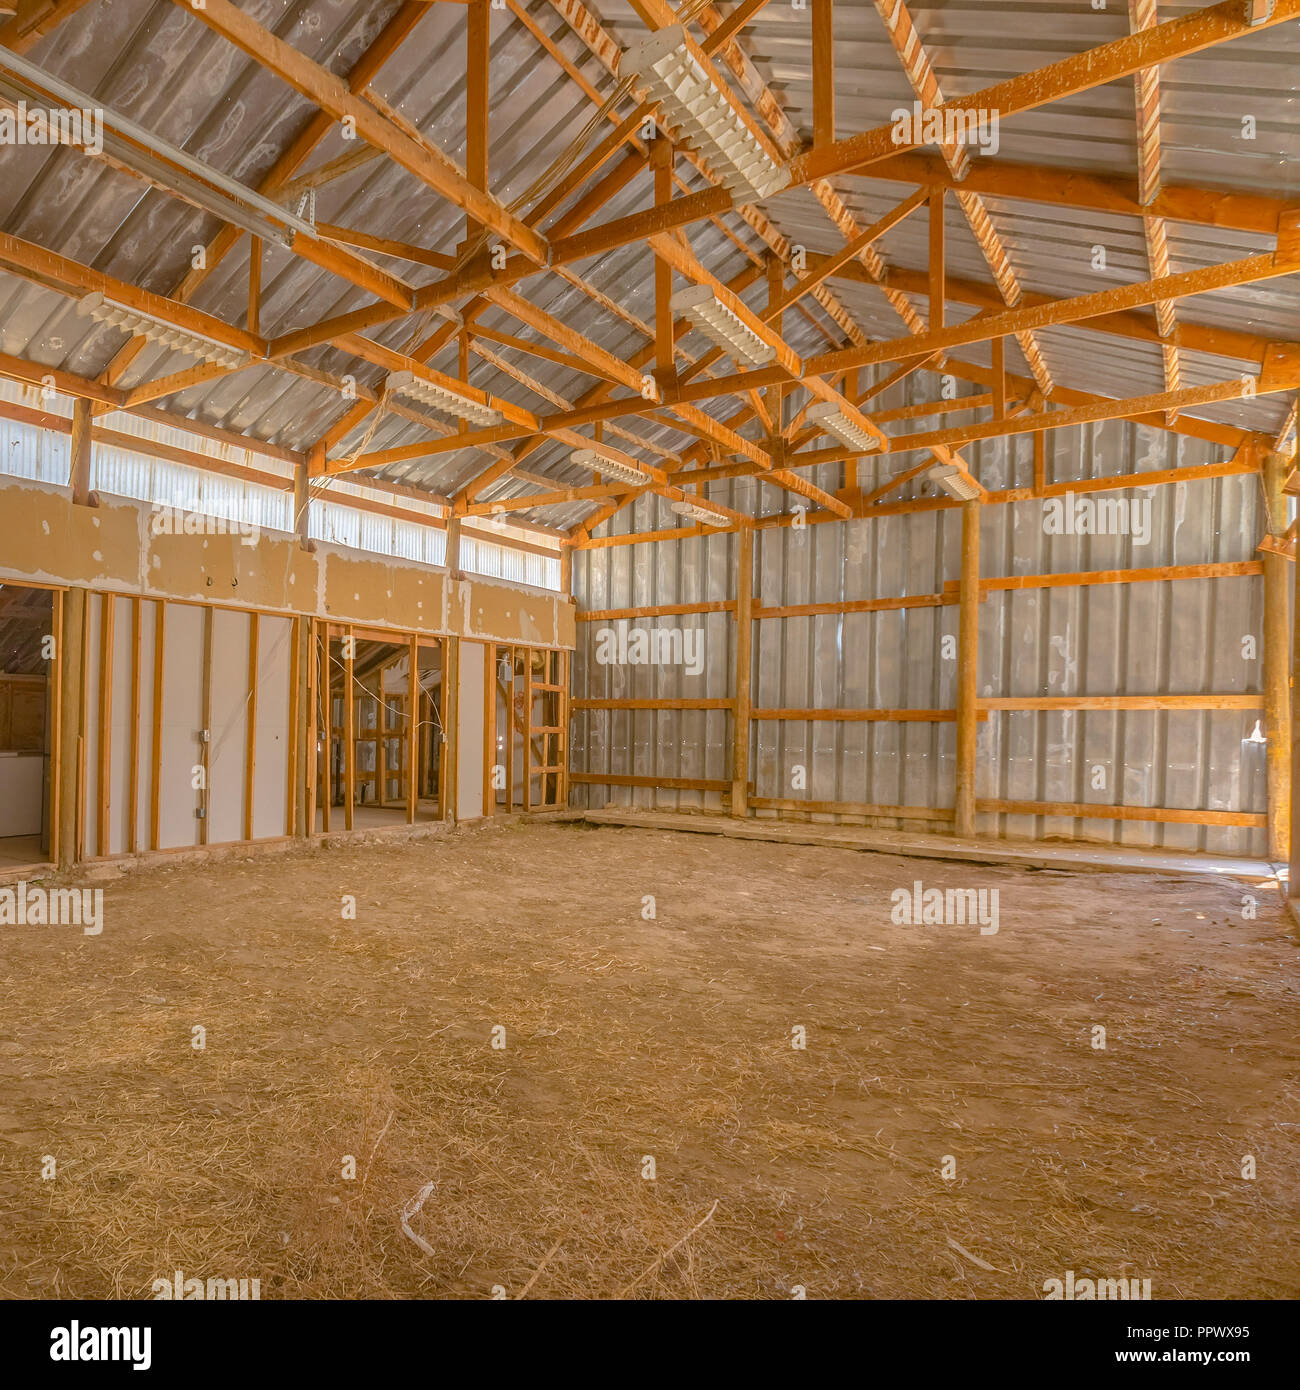 View of a Barn interior with metal roof and wall - Stock Image